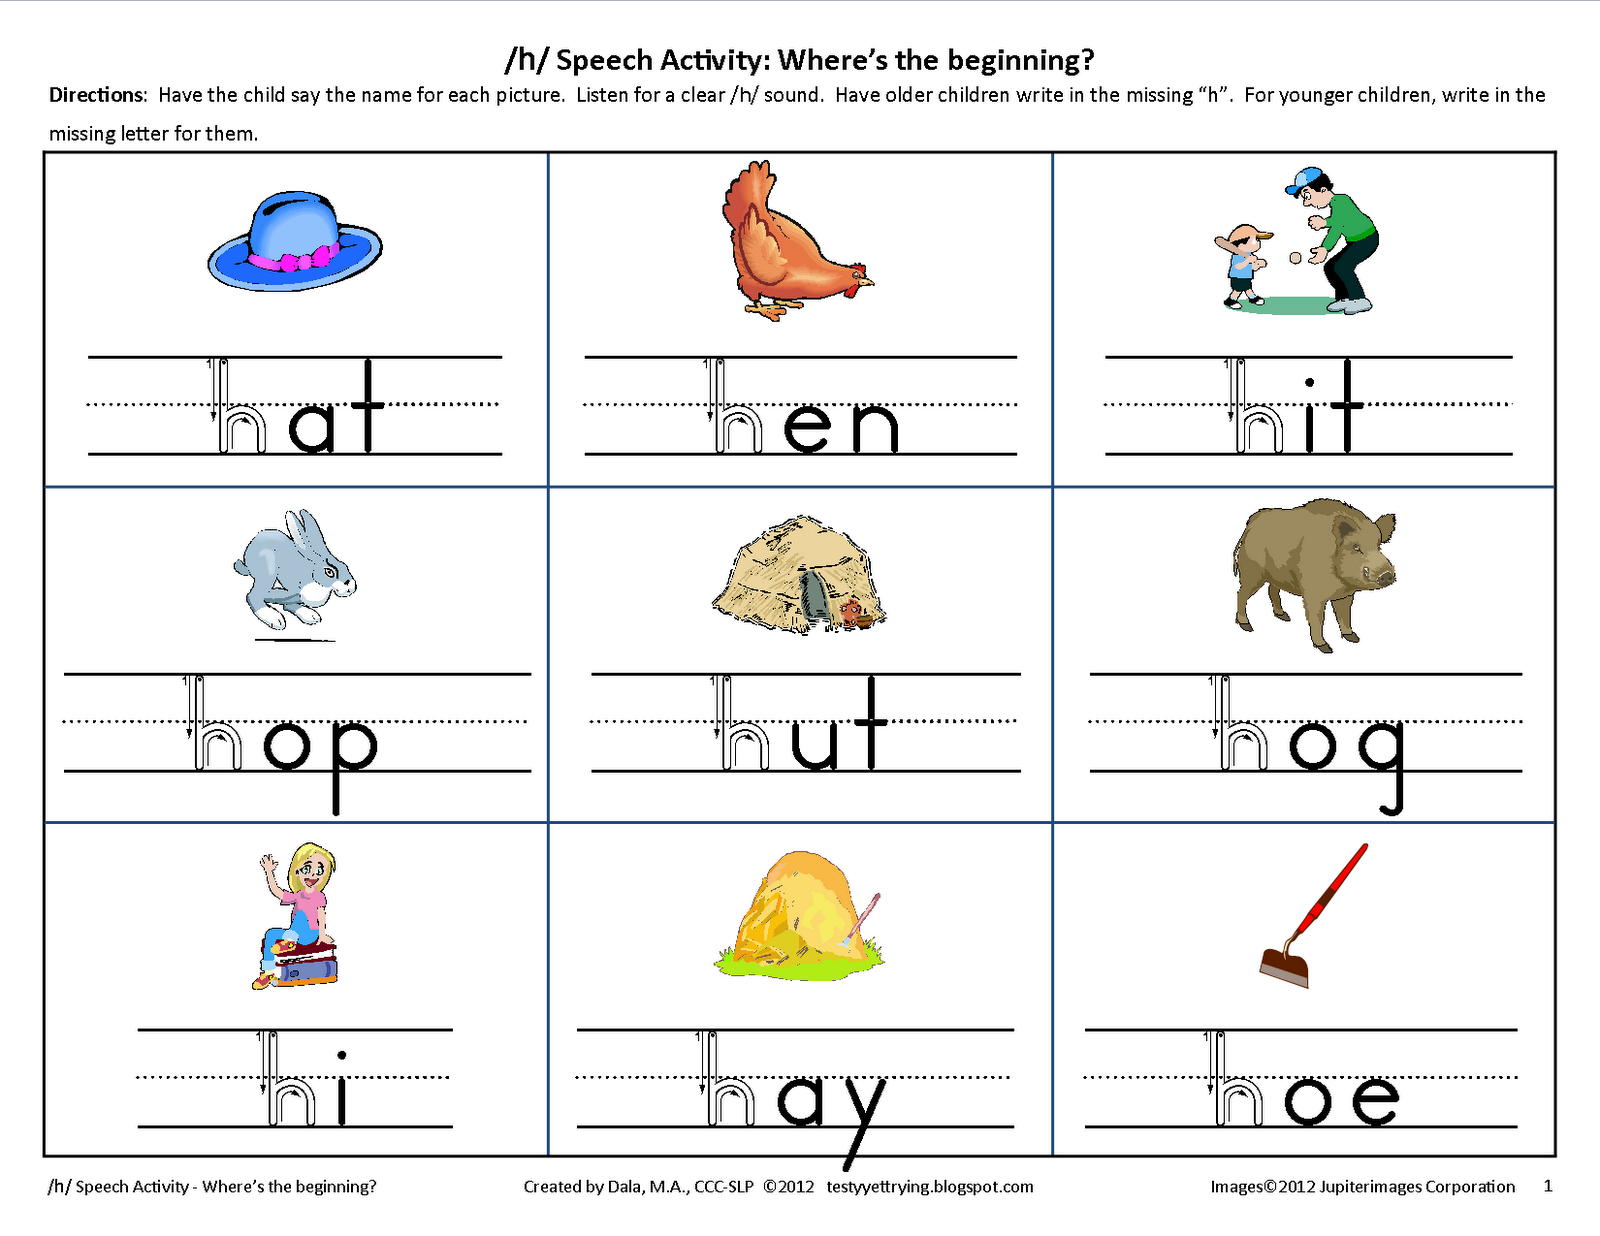 Aldiablosus  Scenic Testy Yet Trying Initial H Speech Worksheet With Glamorous Make Classroom Teachers Happy Reinforce Phonics And Handwriting And Practice Speech All At The Same Time With Delectable Creating A Character Worksheet Also Letter Worksheets For Preschoolers In Addition Pre K  Worksheets And Metric Measurements Worksheet As Well As Toddler Alphabet Worksheets Additionally Child Therapy Worksheets From Testyyettryingblogspotcom With Aldiablosus  Glamorous Testy Yet Trying Initial H Speech Worksheet With Delectable Make Classroom Teachers Happy Reinforce Phonics And Handwriting And Practice Speech All At The Same Time And Scenic Creating A Character Worksheet Also Letter Worksheets For Preschoolers In Addition Pre K  Worksheets From Testyyettryingblogspotcom